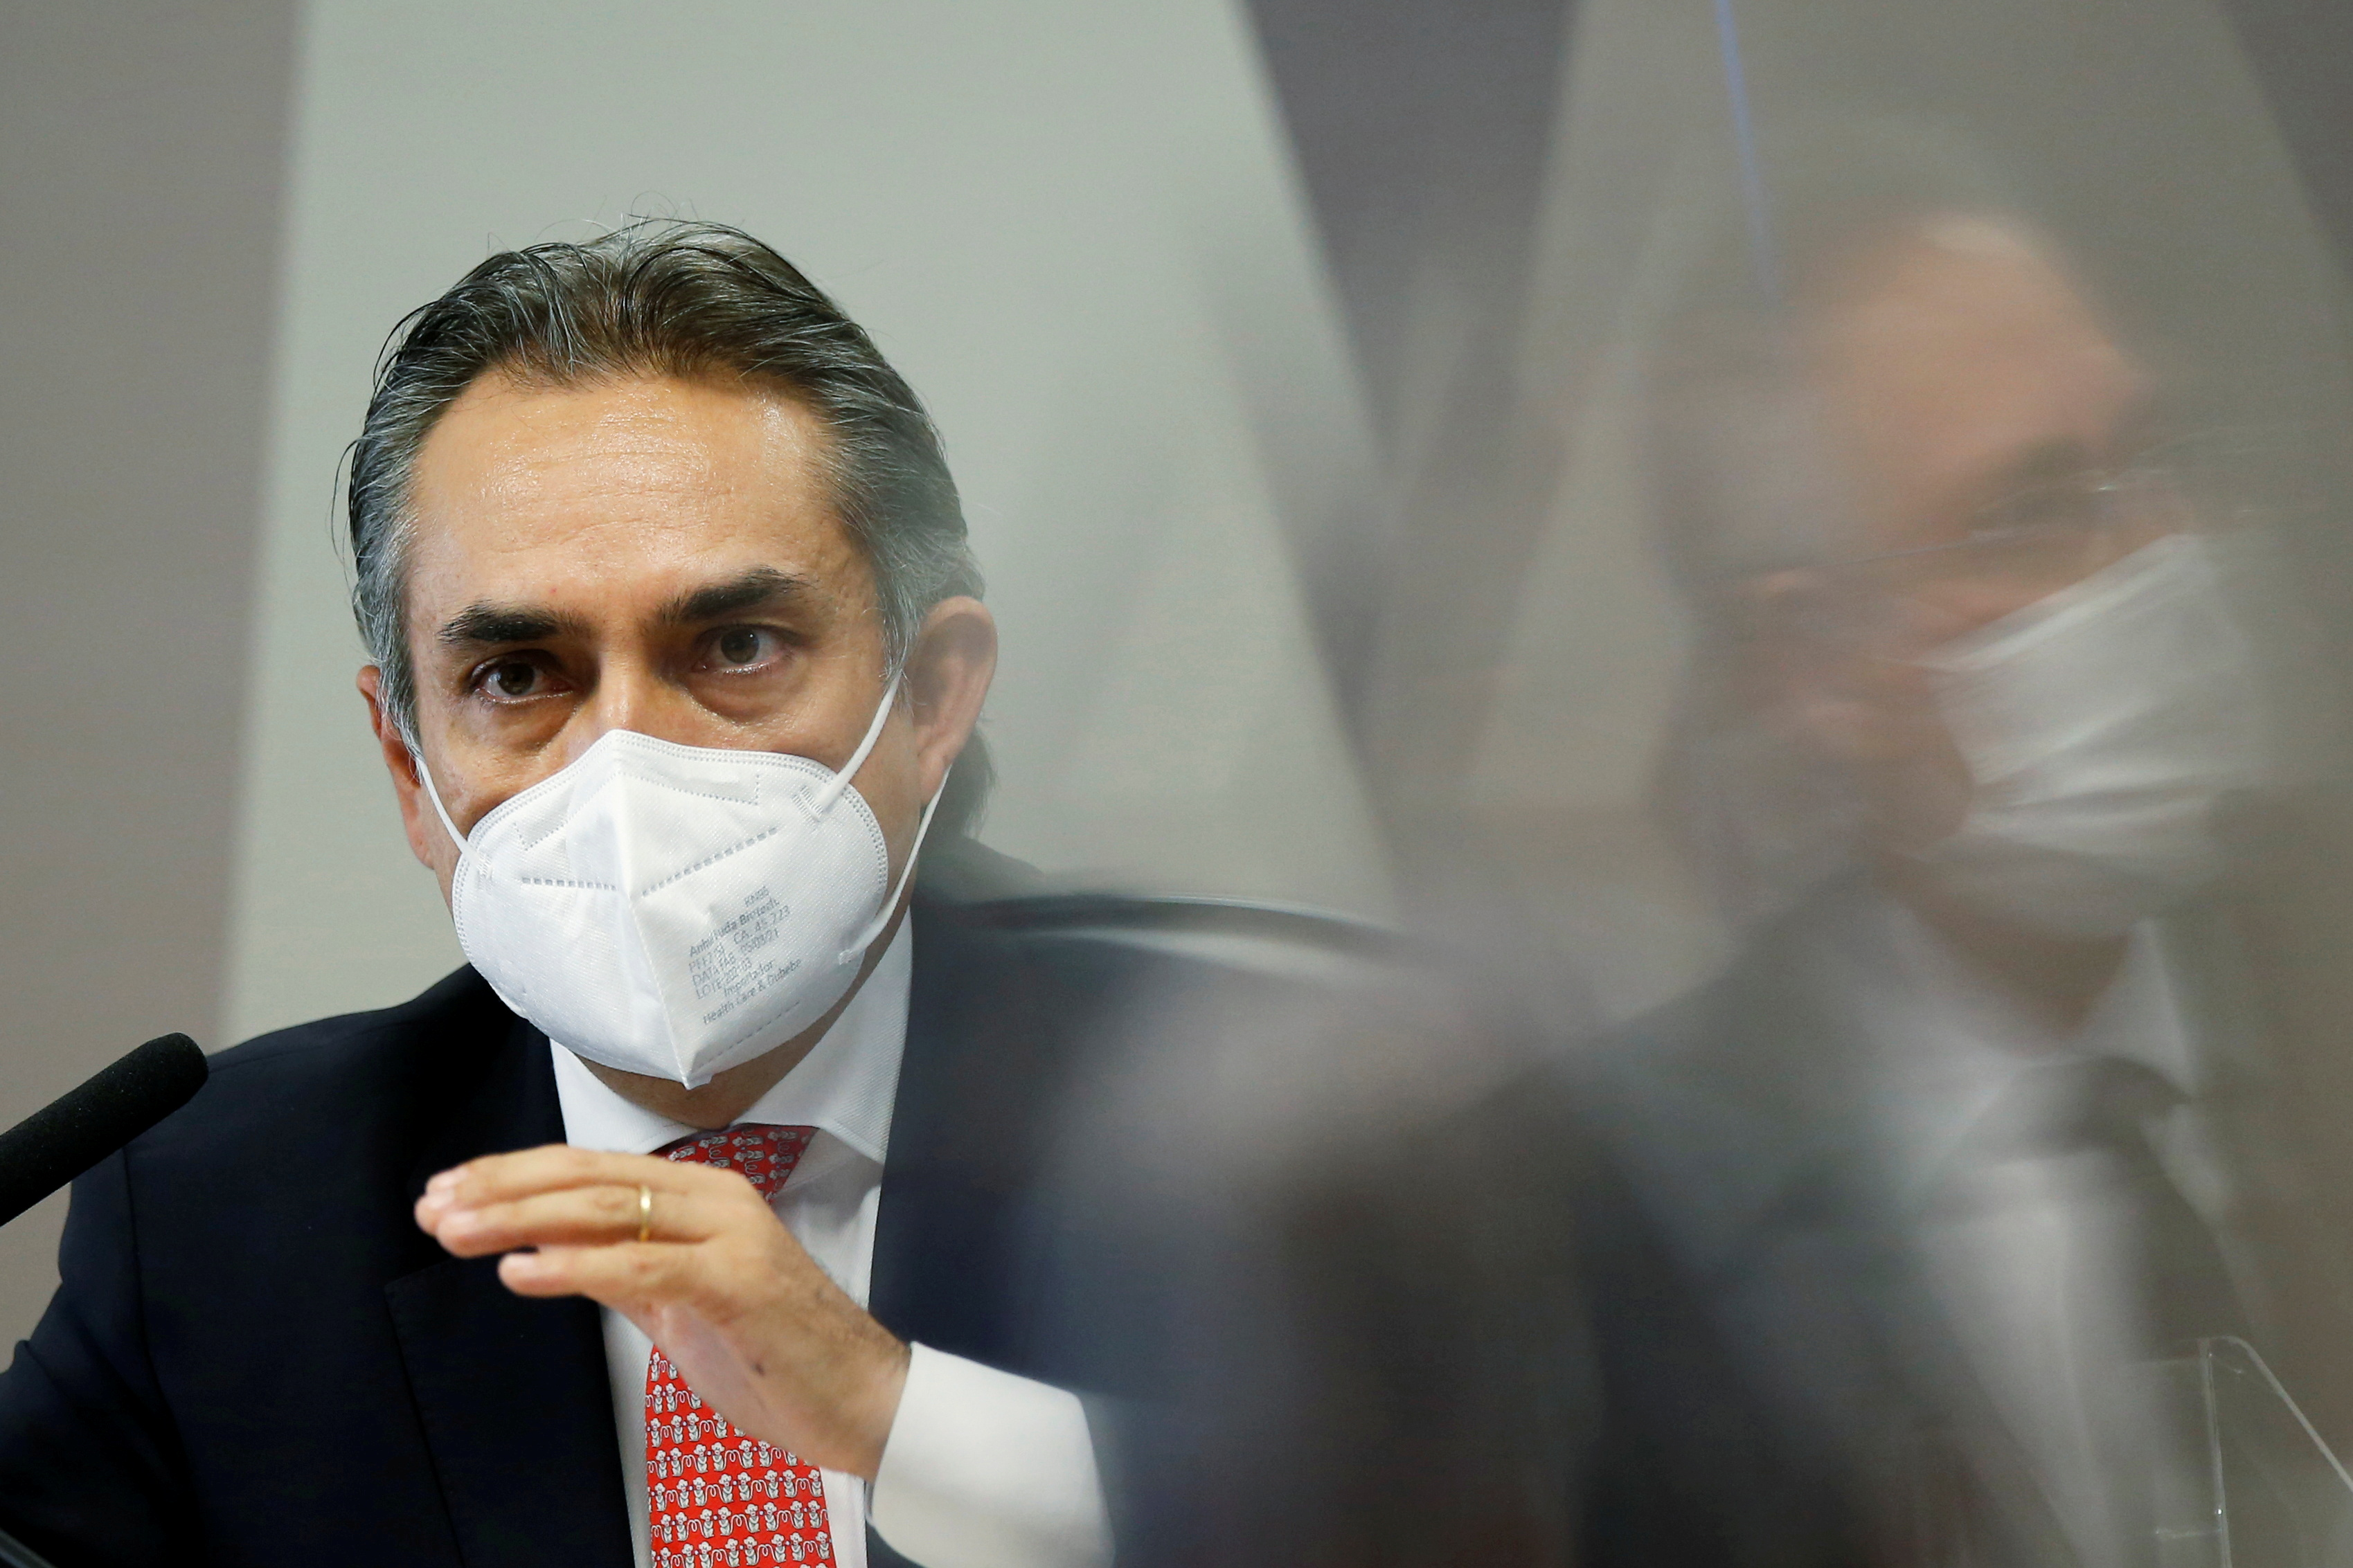 President of Pfizer Latin Americal, Carlos Murillo speaks during a meeting of the Parliamentary Inquiry Committee (CPI) to investigate government actions and management during the coronavirus disease (COVID-19) pandemic, at the Federal Senate in Brasilia, Brazil May 13, 2021. REUTERS/Adriano Machado